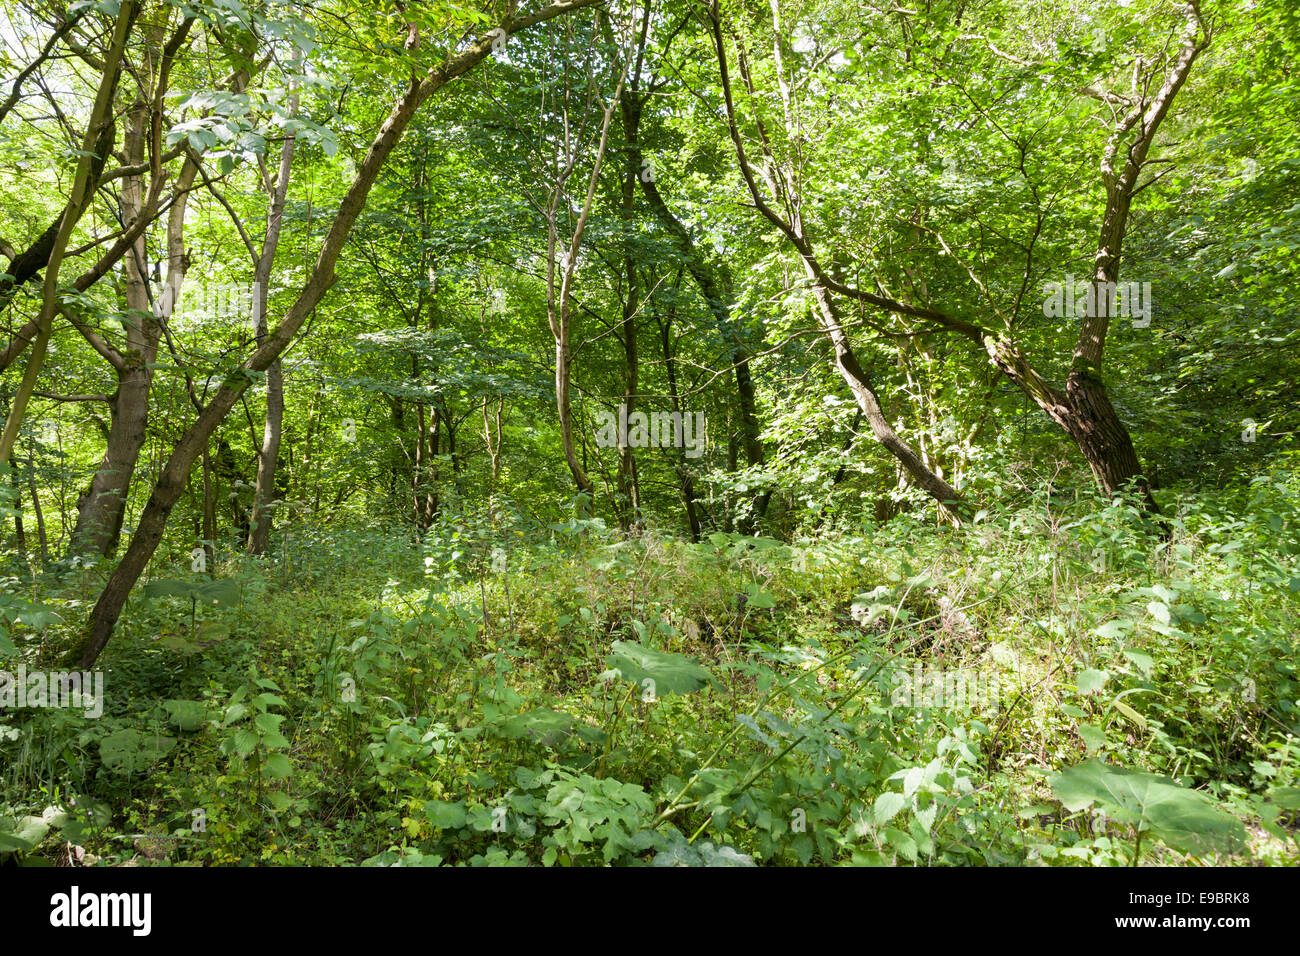 Dense woodland with a thick undergrowth, Cressbrook Dale, Derbyshire, Peak District National Park, England, UK Stock Photo